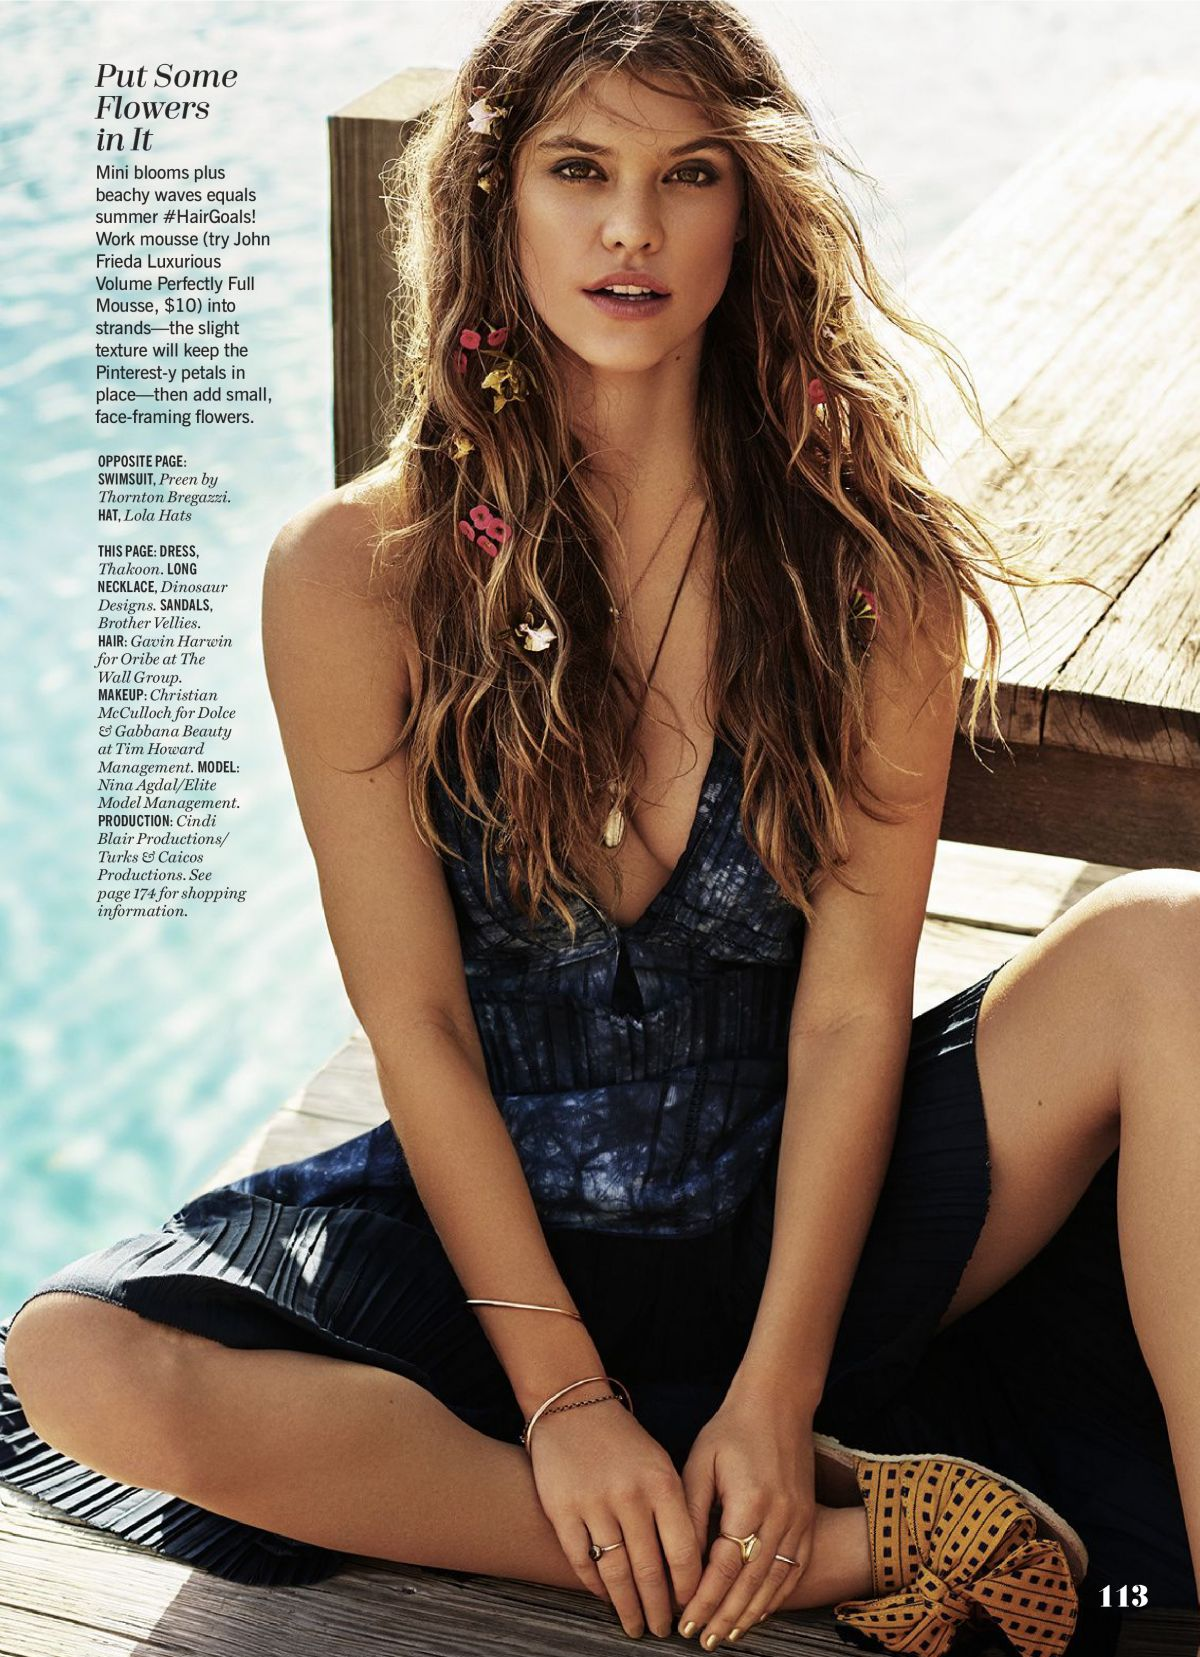 NINA AGDAL in Cosmopolitan Magazine, July 2016 Issue